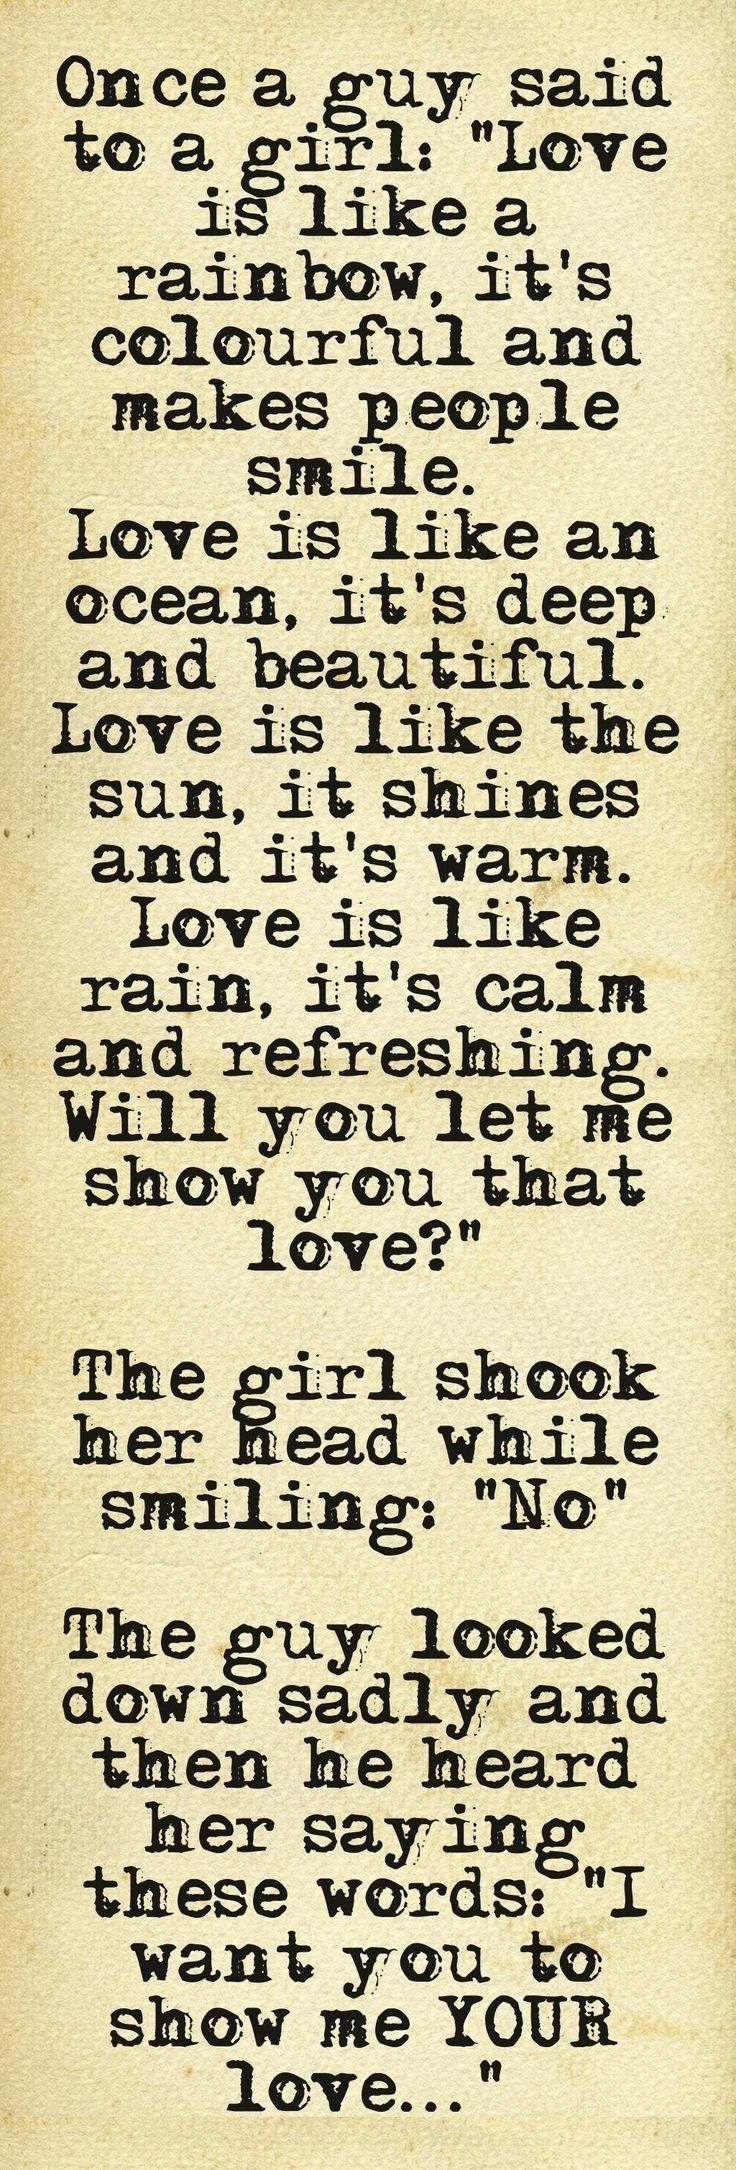 from Eric cute dating quotes for your boyfriend